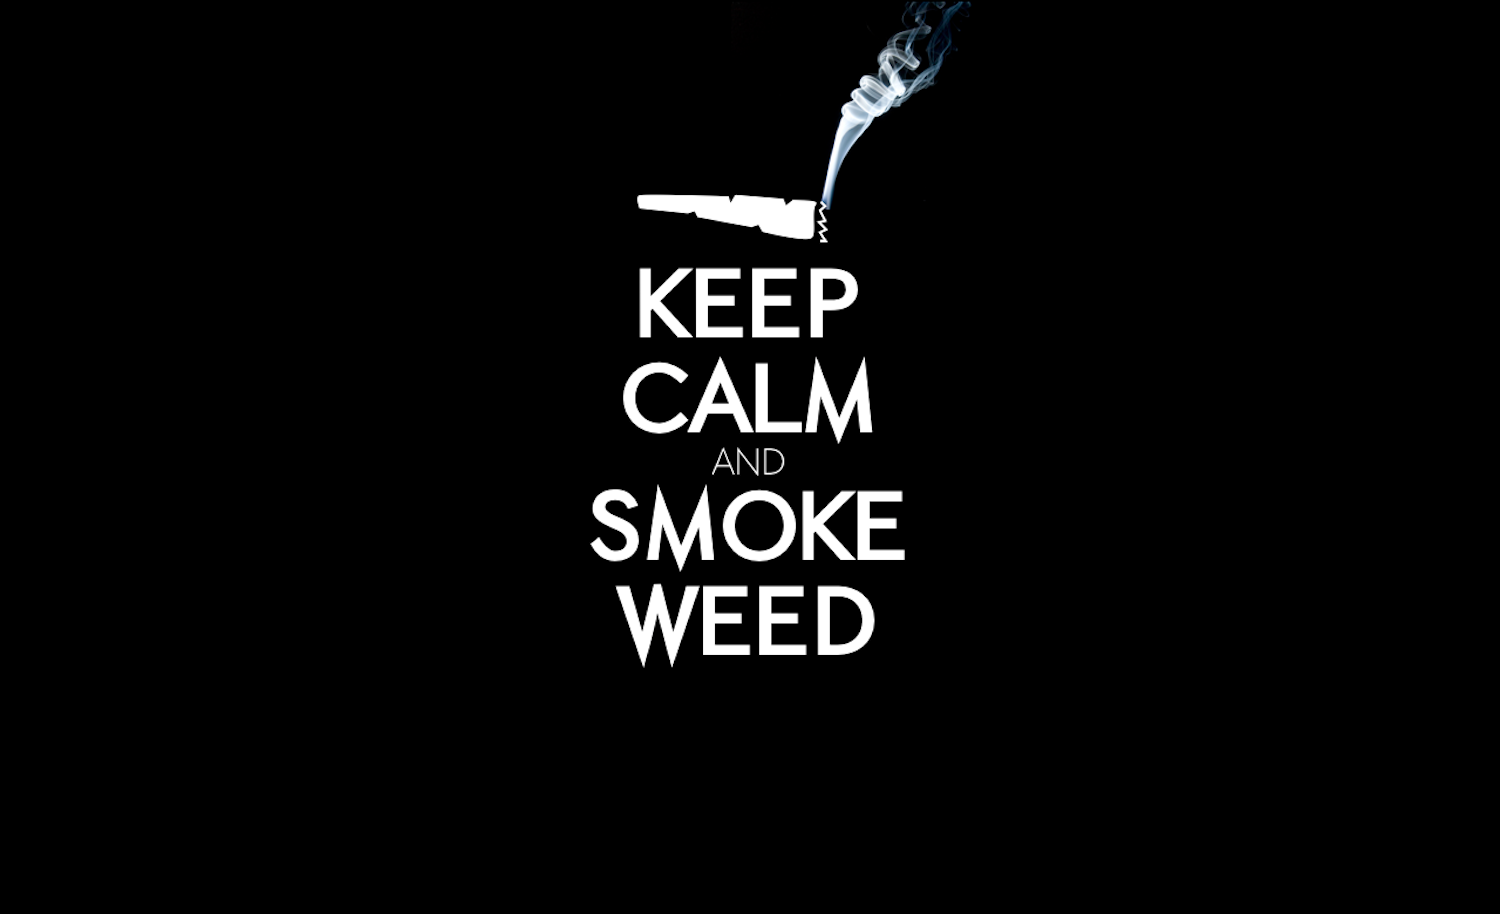 http://4.bp.blogspot.com/-tNdM-ufHyKY/UDKZ-DBJLEI/AAAAAAAAAzw/pECakqEUsgo/s1600/11weedsmoke_smoke_weed_high_resolution_desktop_1500x914_hd-wallpaper-723327.png